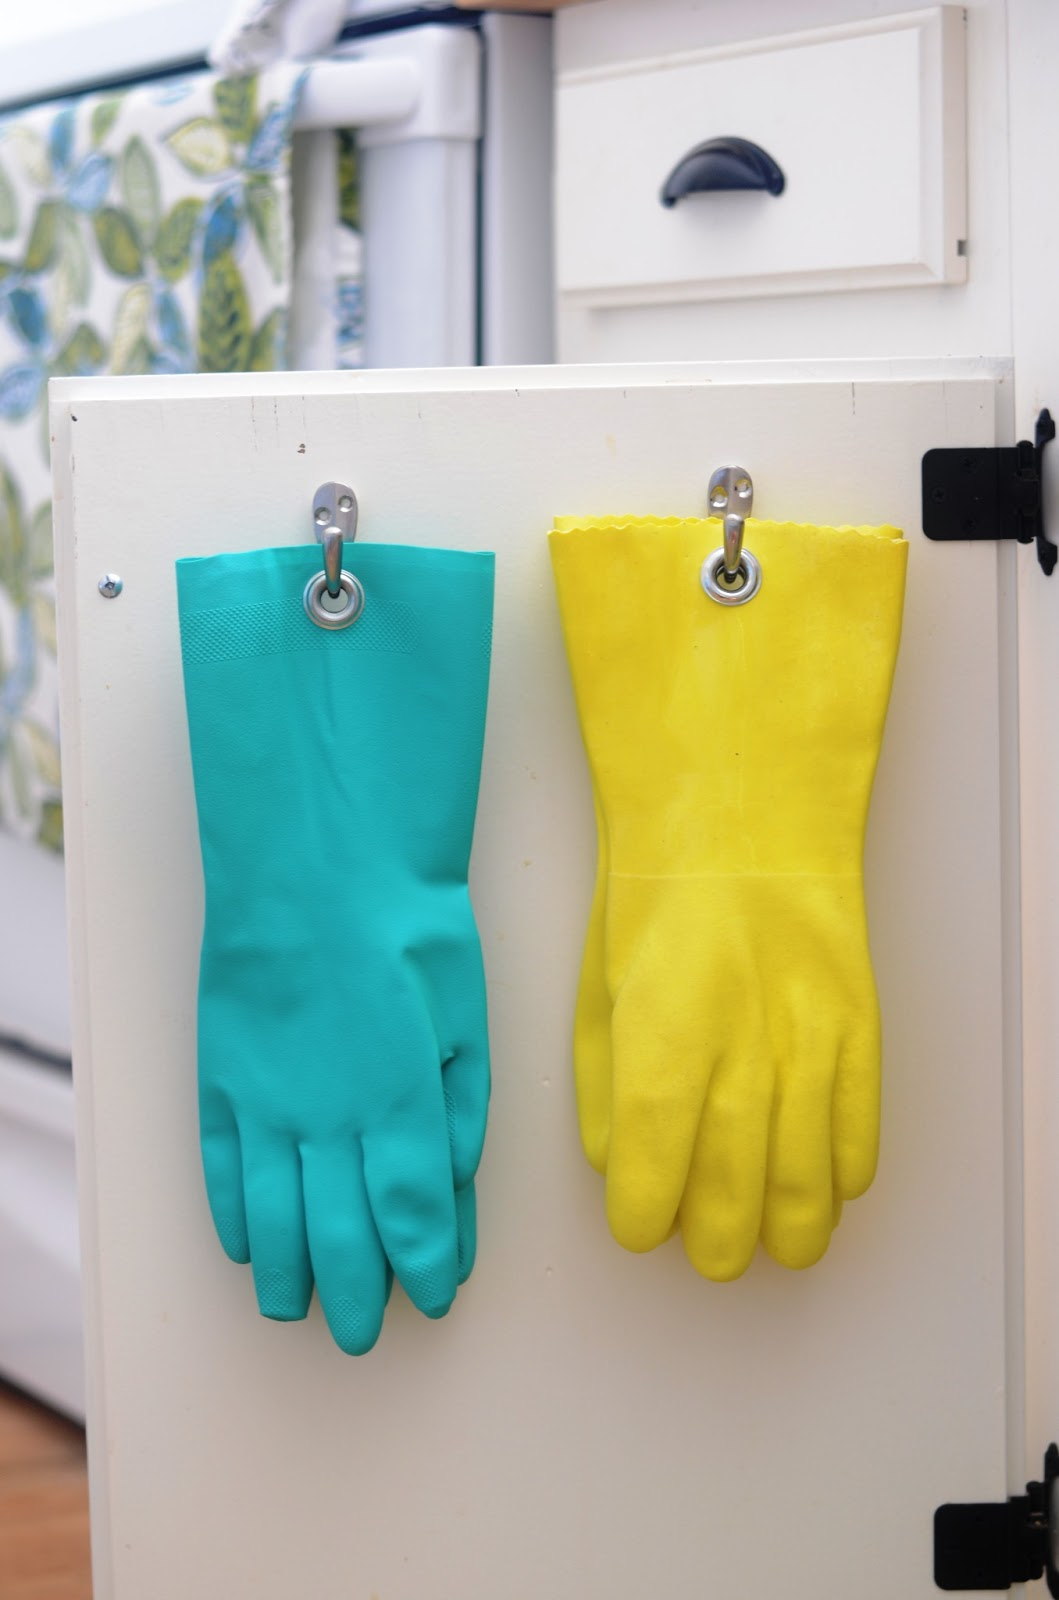 Add grommets to your rubber gloves to hang them inside a cupboard door, found on Iron and Twine.